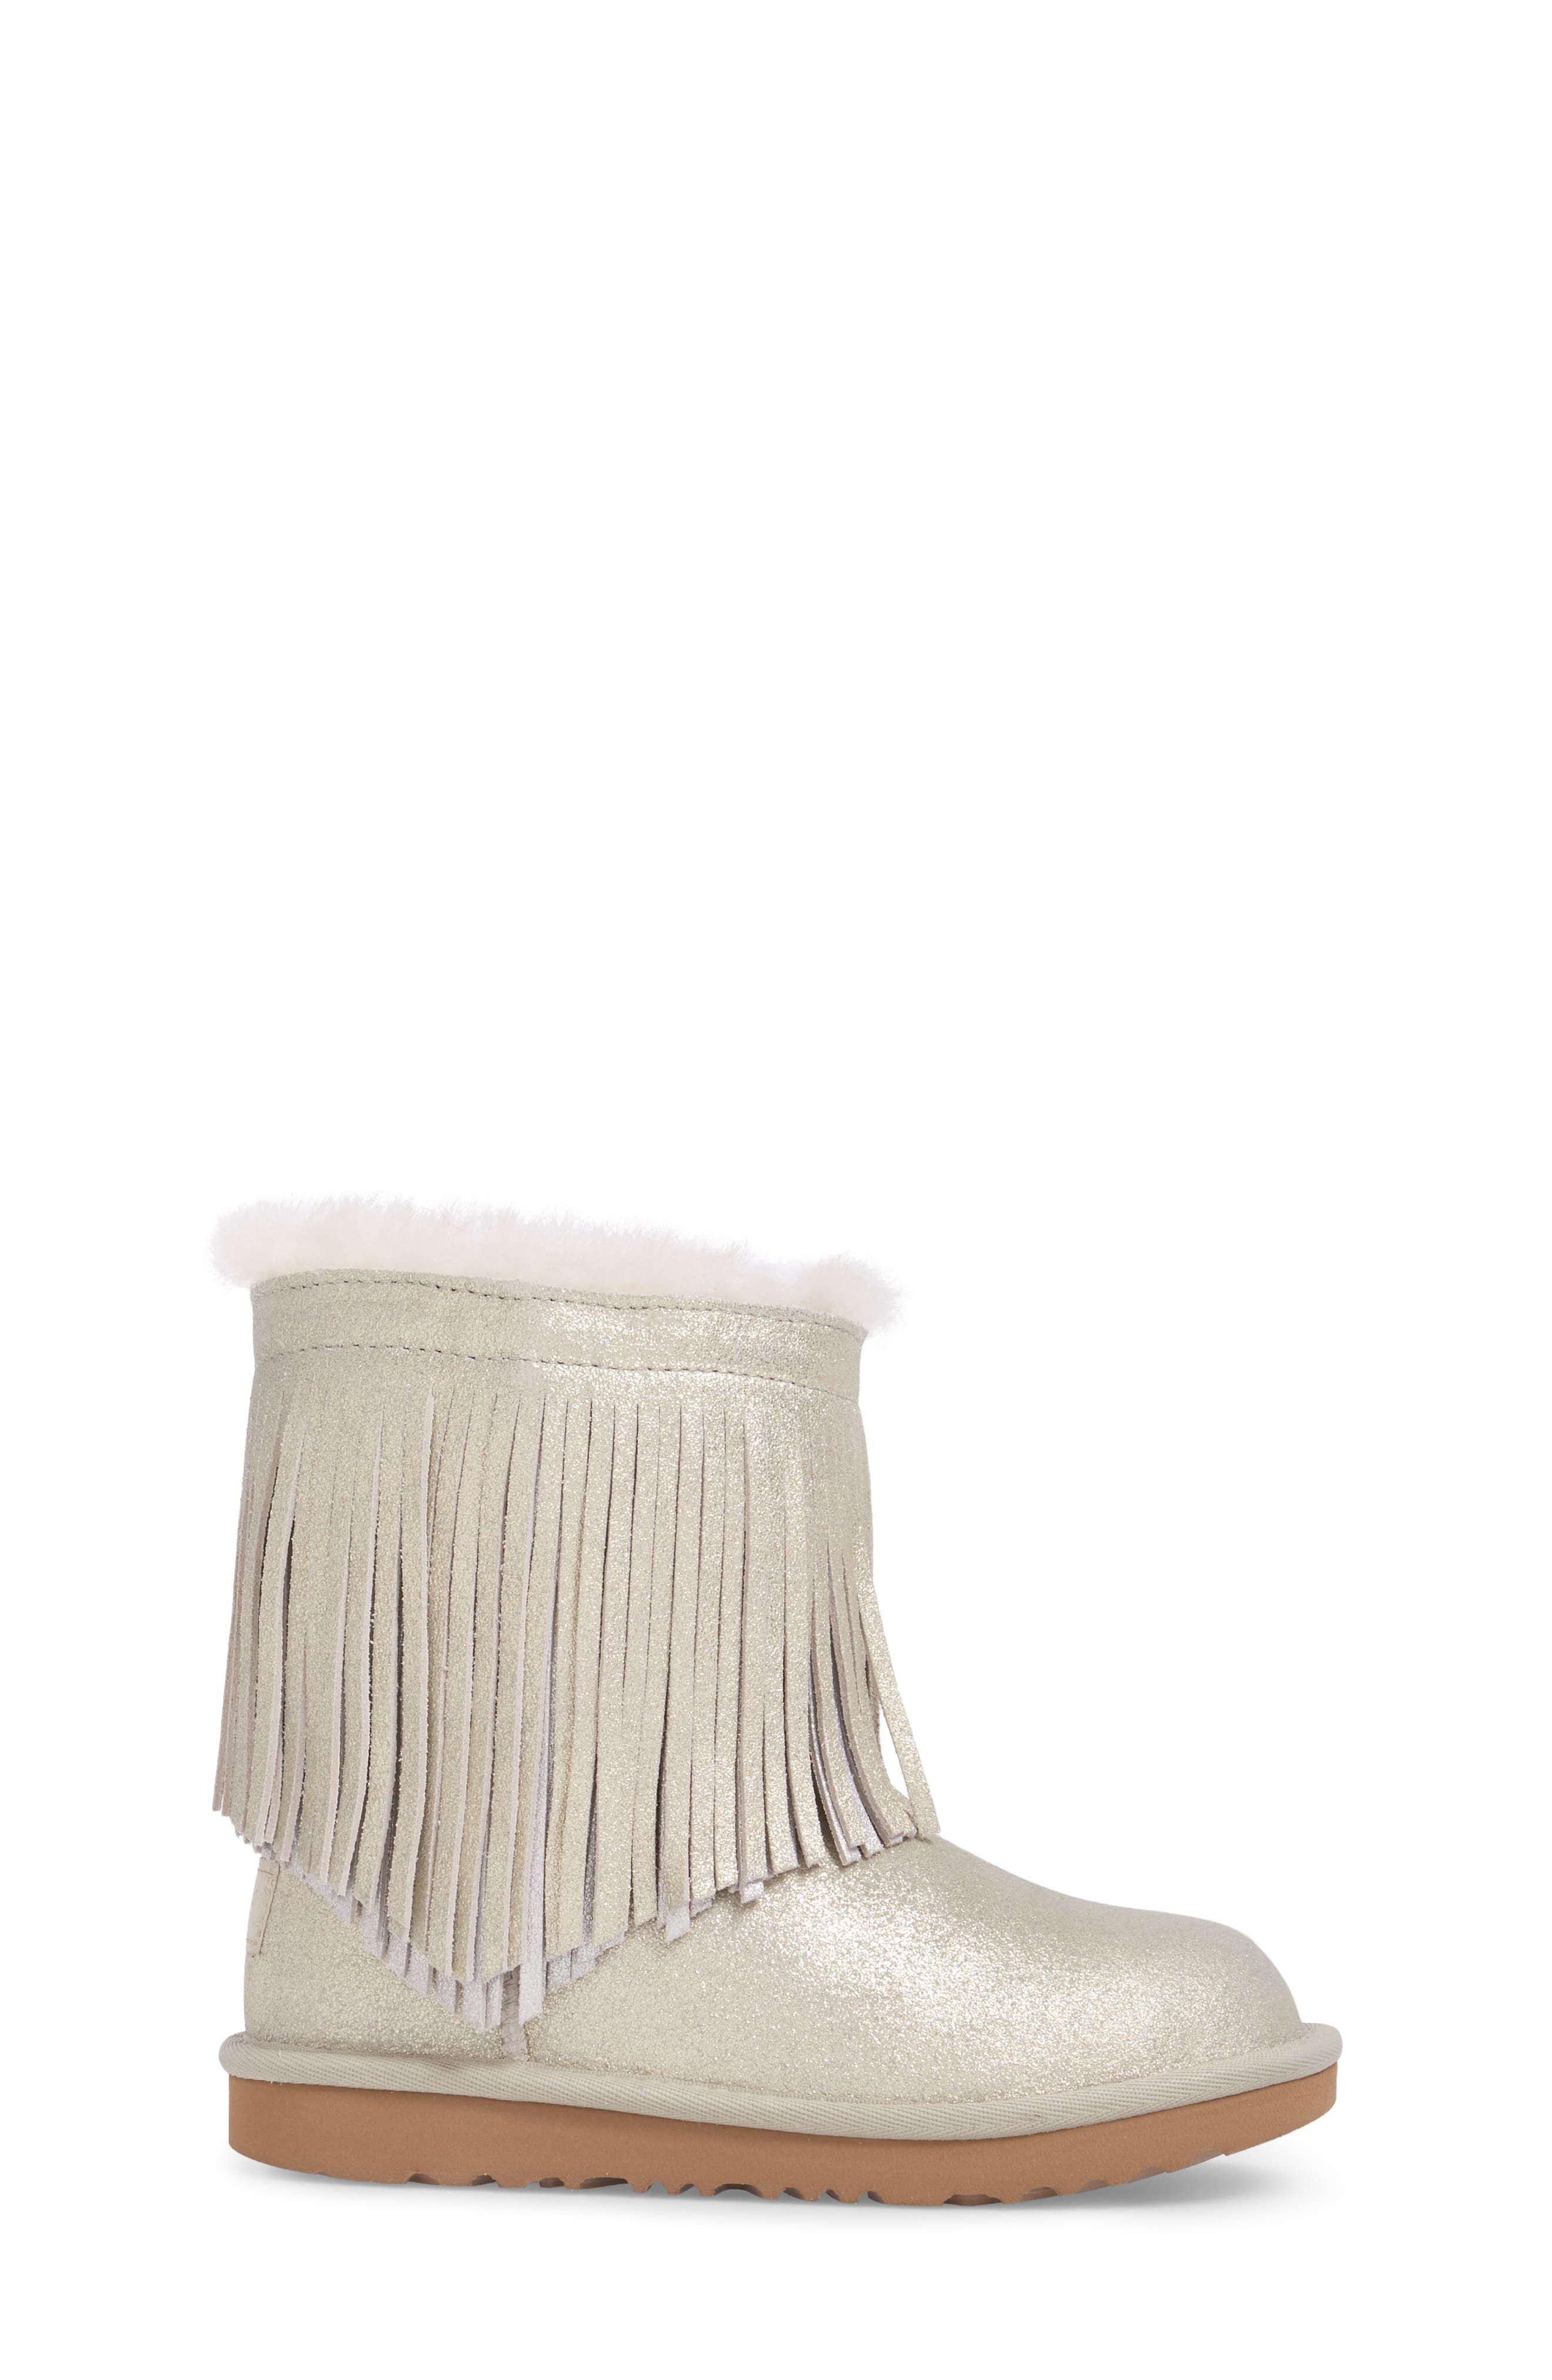 Classic Short II Genuine Shearling Metallic Fringe Bootie,                             Alternate thumbnail 3, color,                             Gold